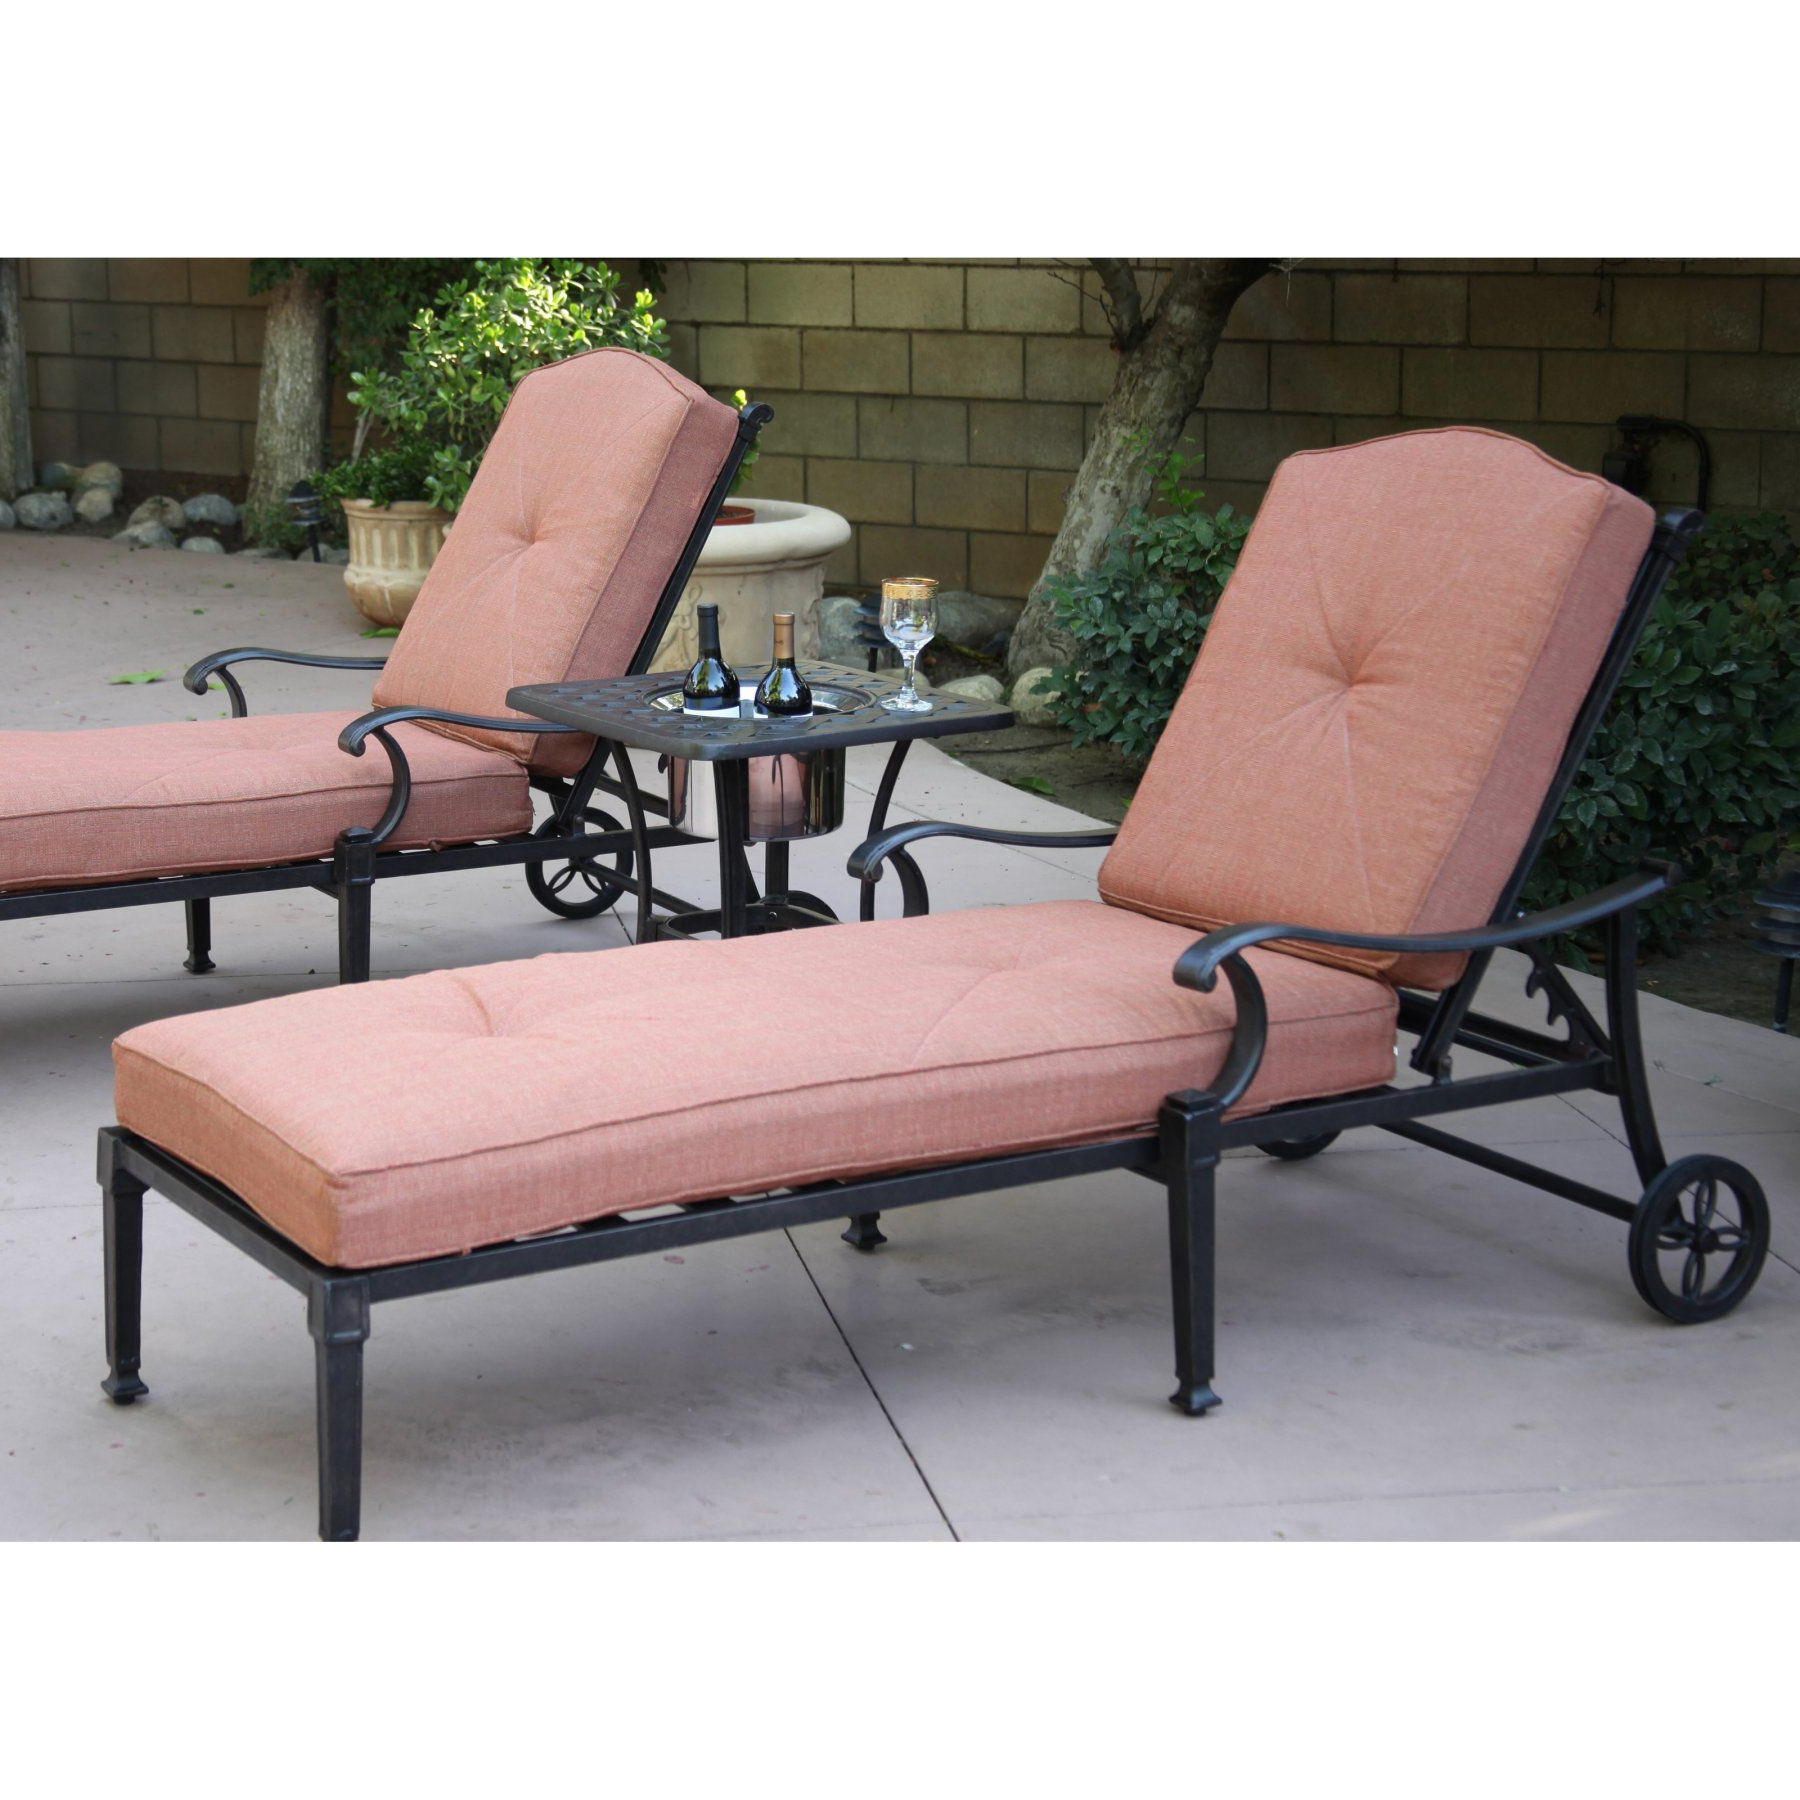 Well Liked Darlee Charleston Aluminum 3 Piece Patio Lounge Set – Dl1091 Regarding 3 Piece Patio Lounger Sets (View 25 of 25)